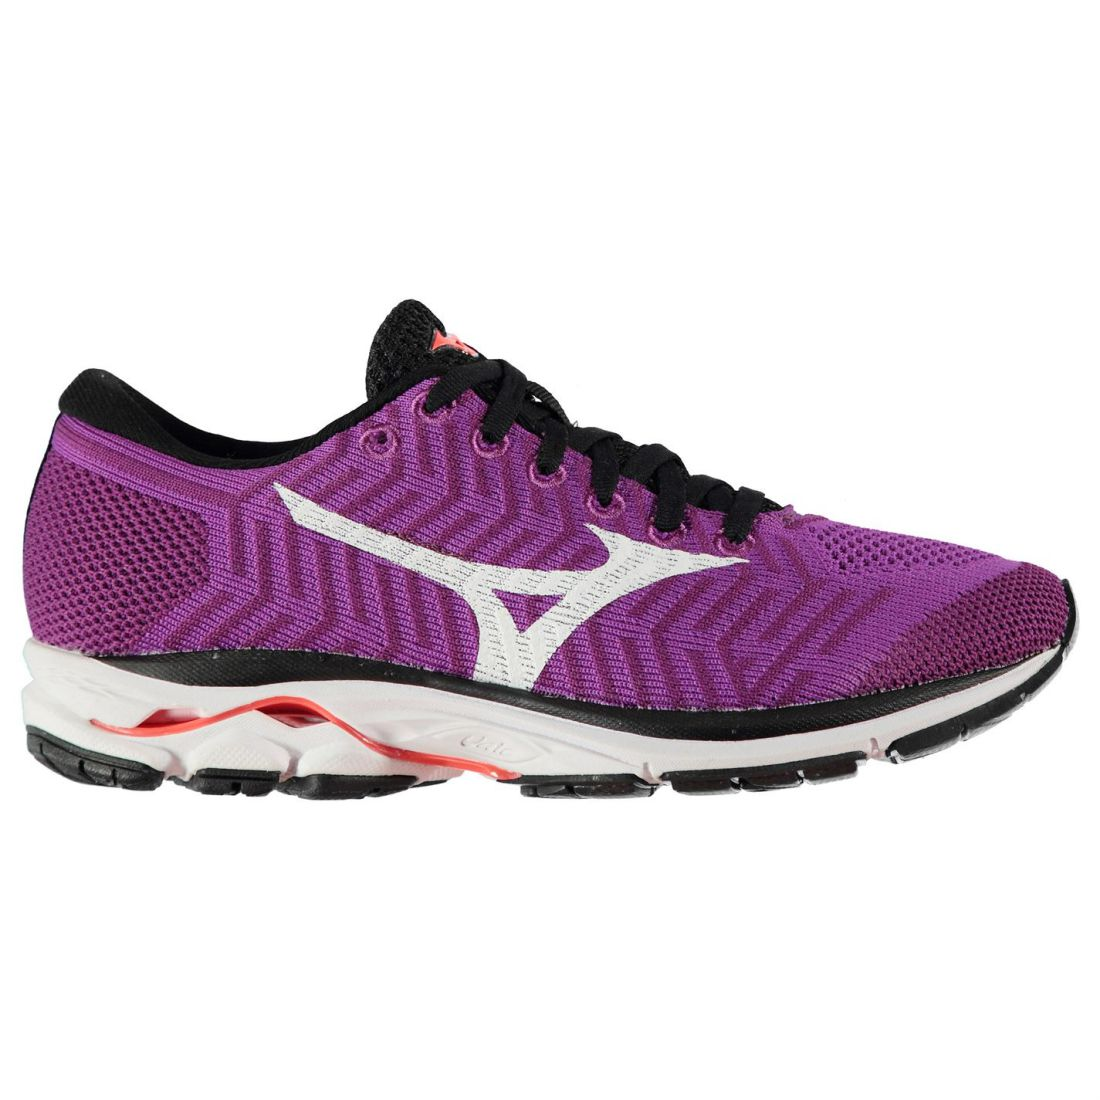 Mizuno Womens Wave Knit R1 Running shoes Road